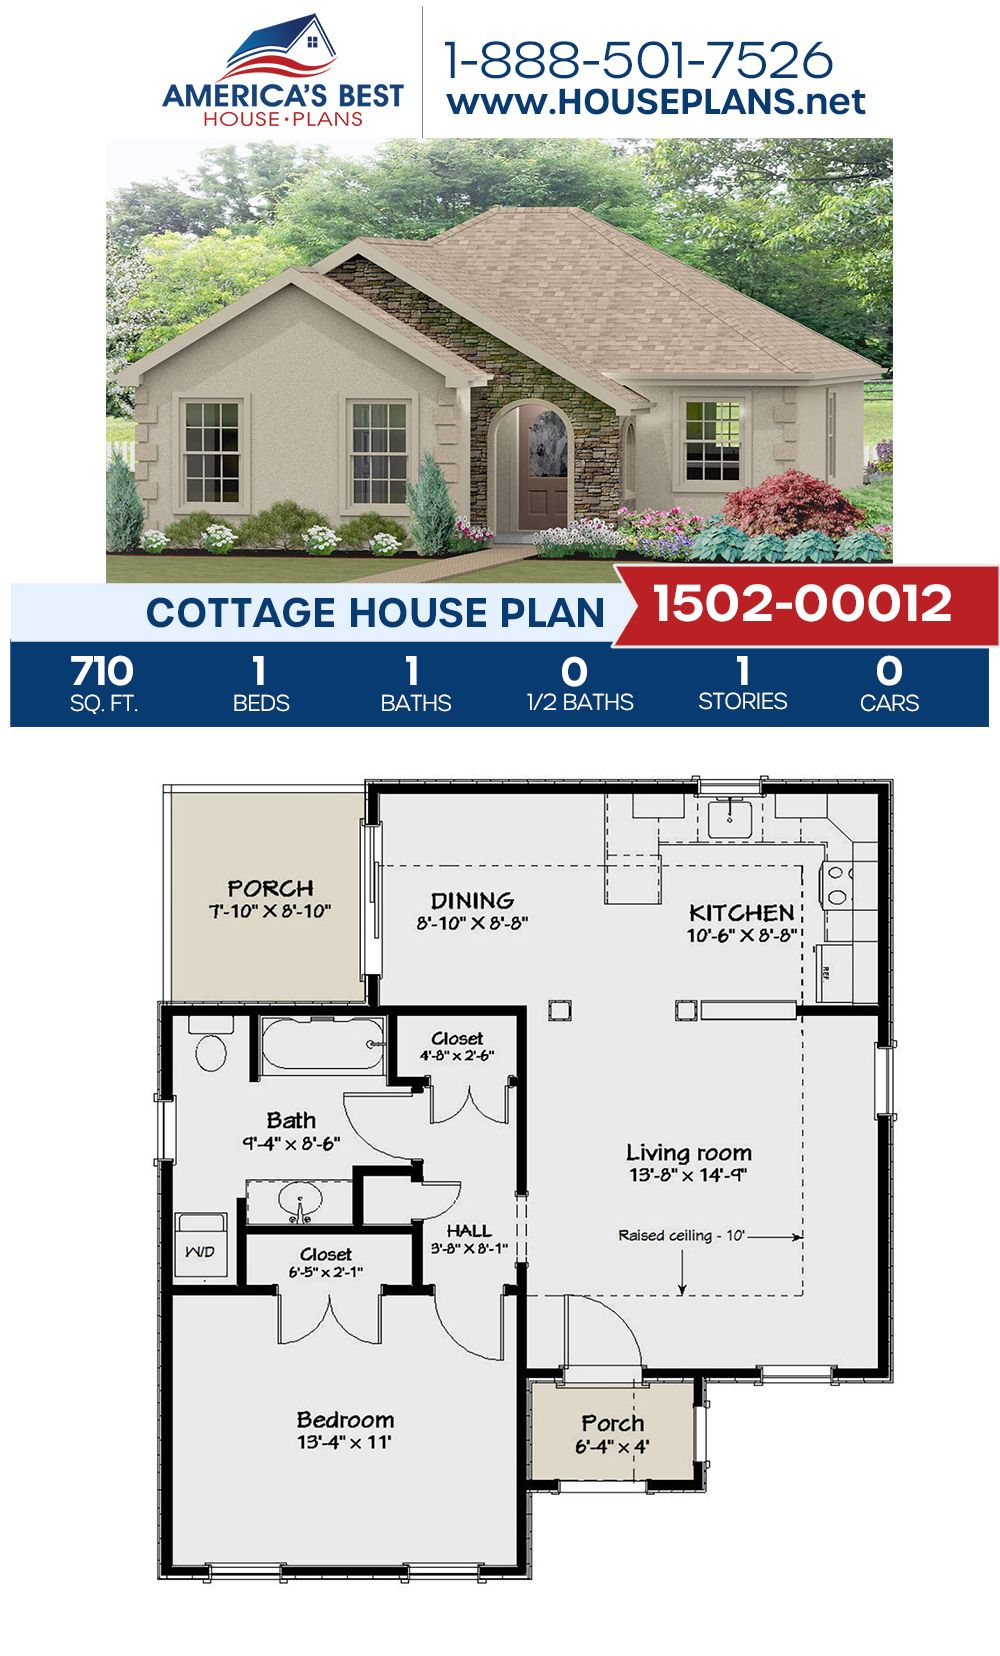 House Plan 1502 00012 Cottage Plan 710 Square Feet 1 Bedroom 1 Bathroom Cottage Floor Plans Cottage House Plans Bungalow House Plans